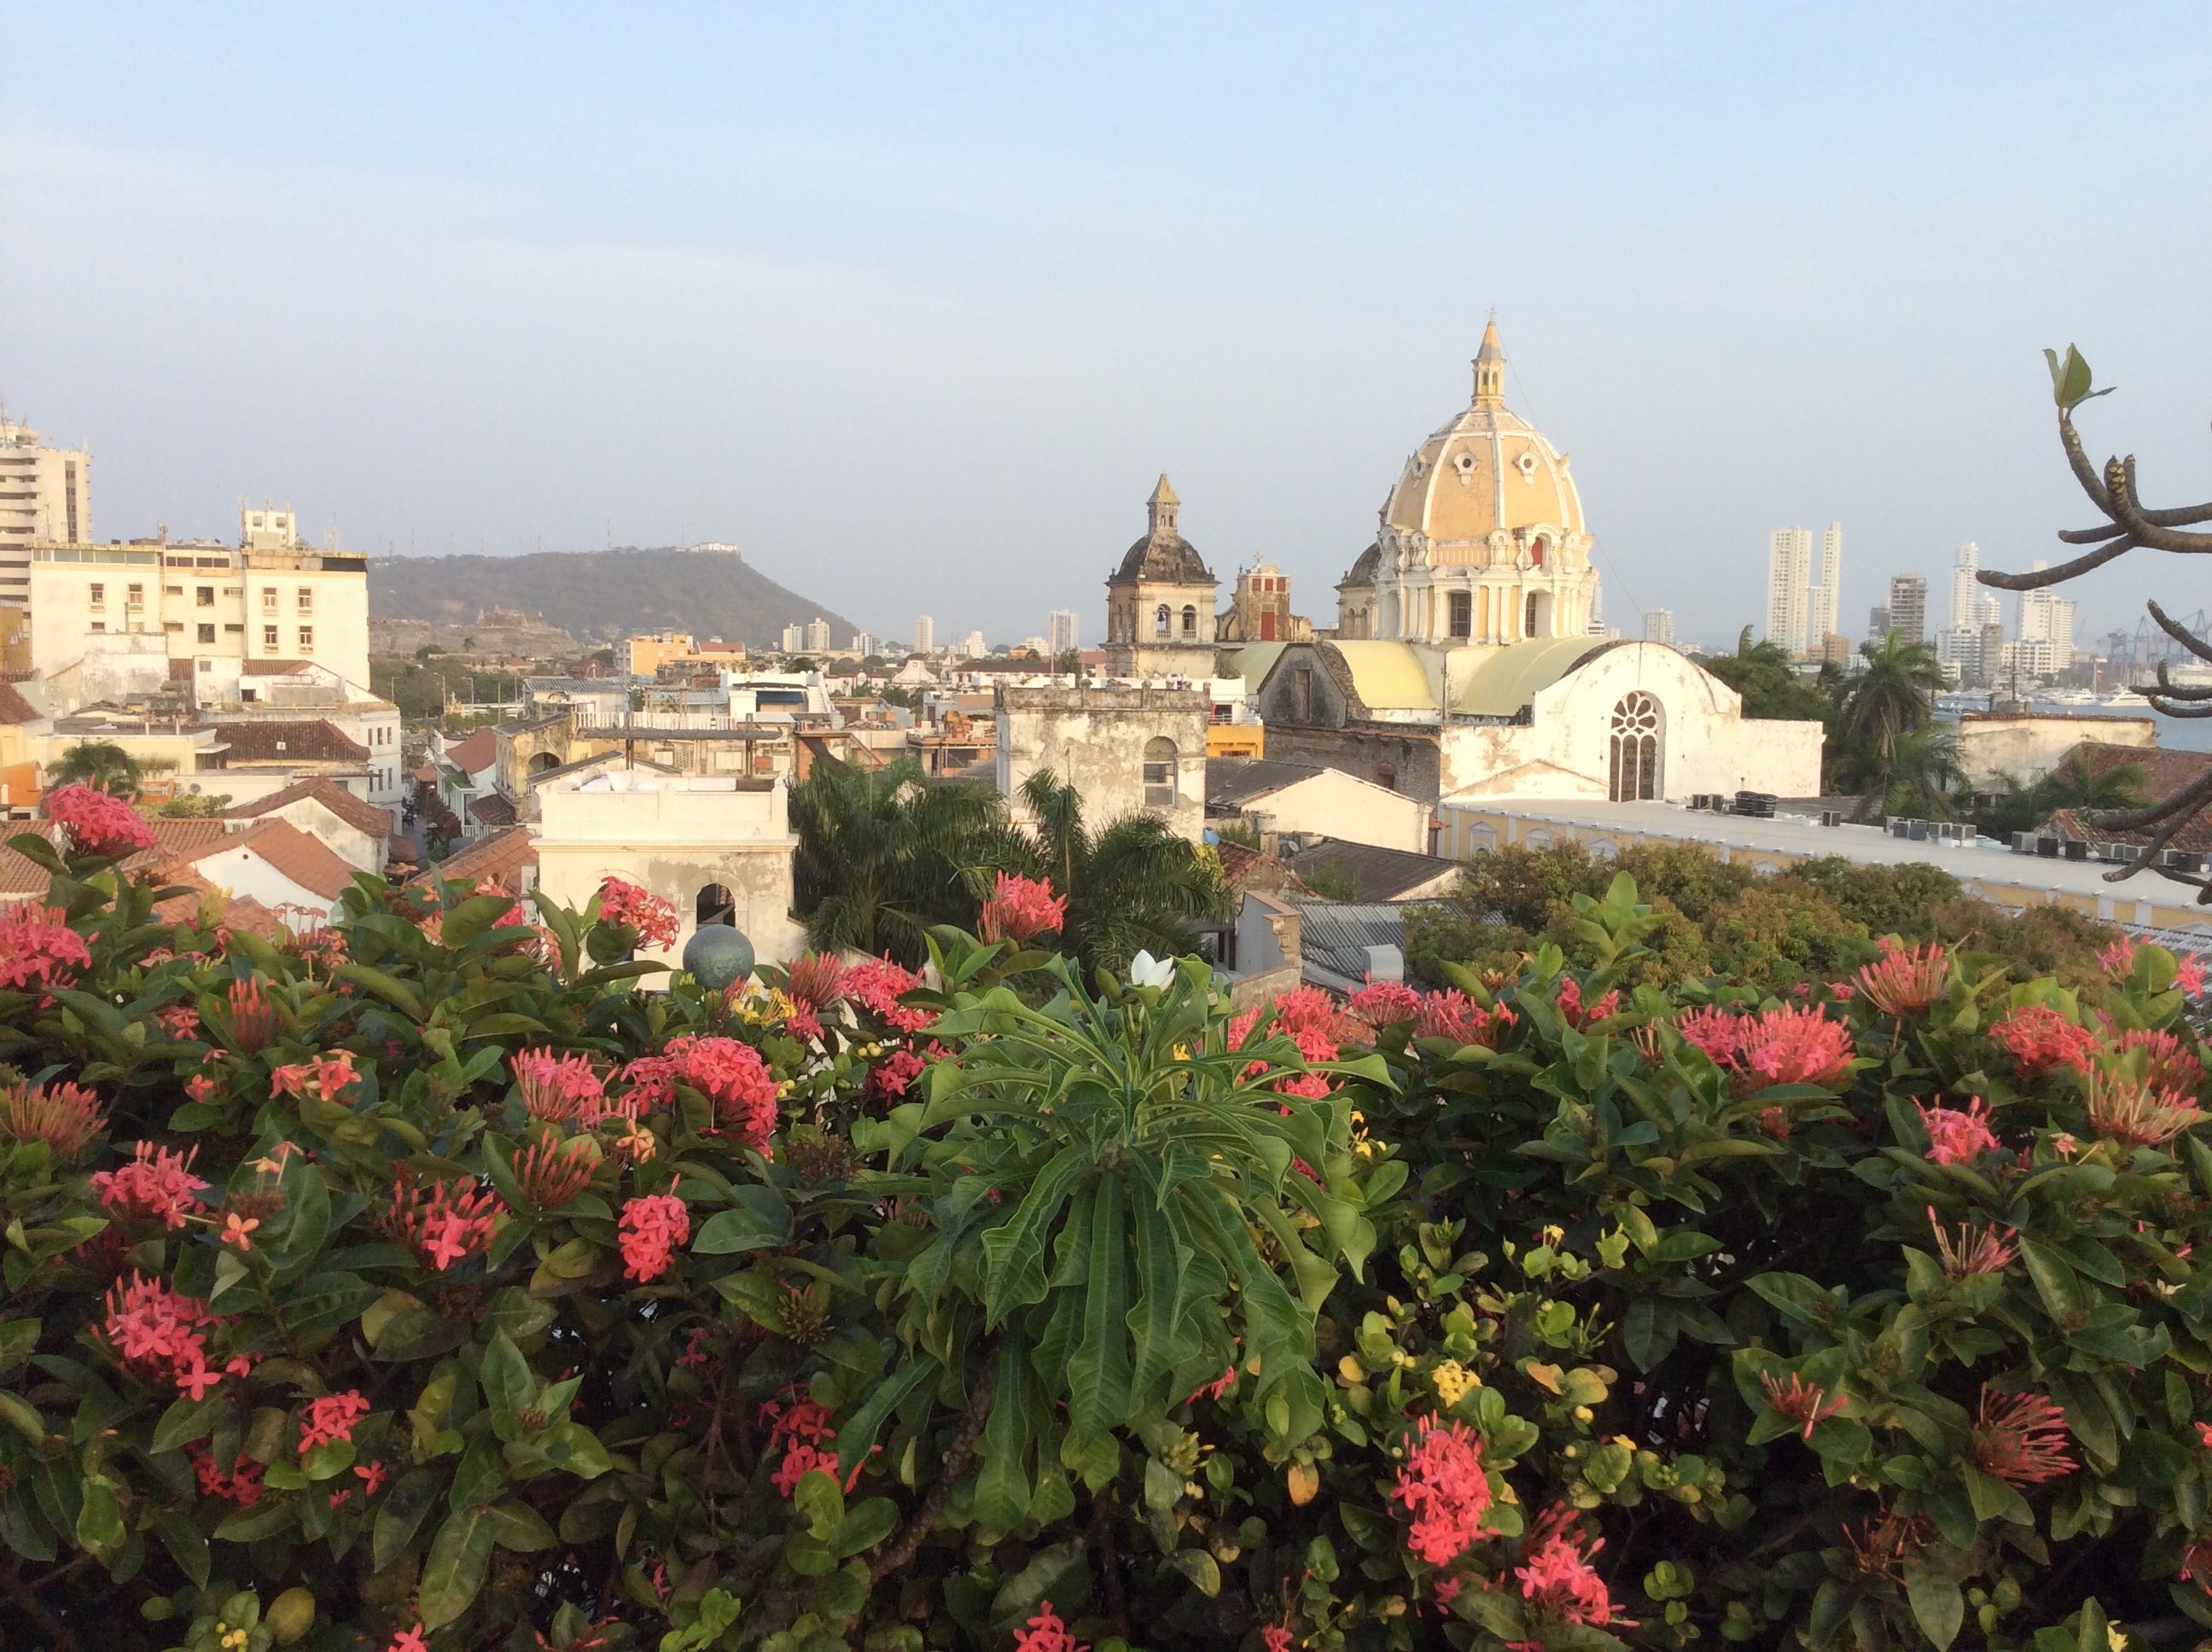 Cartagena de Indias views of the city with pink flowers in the foreground.